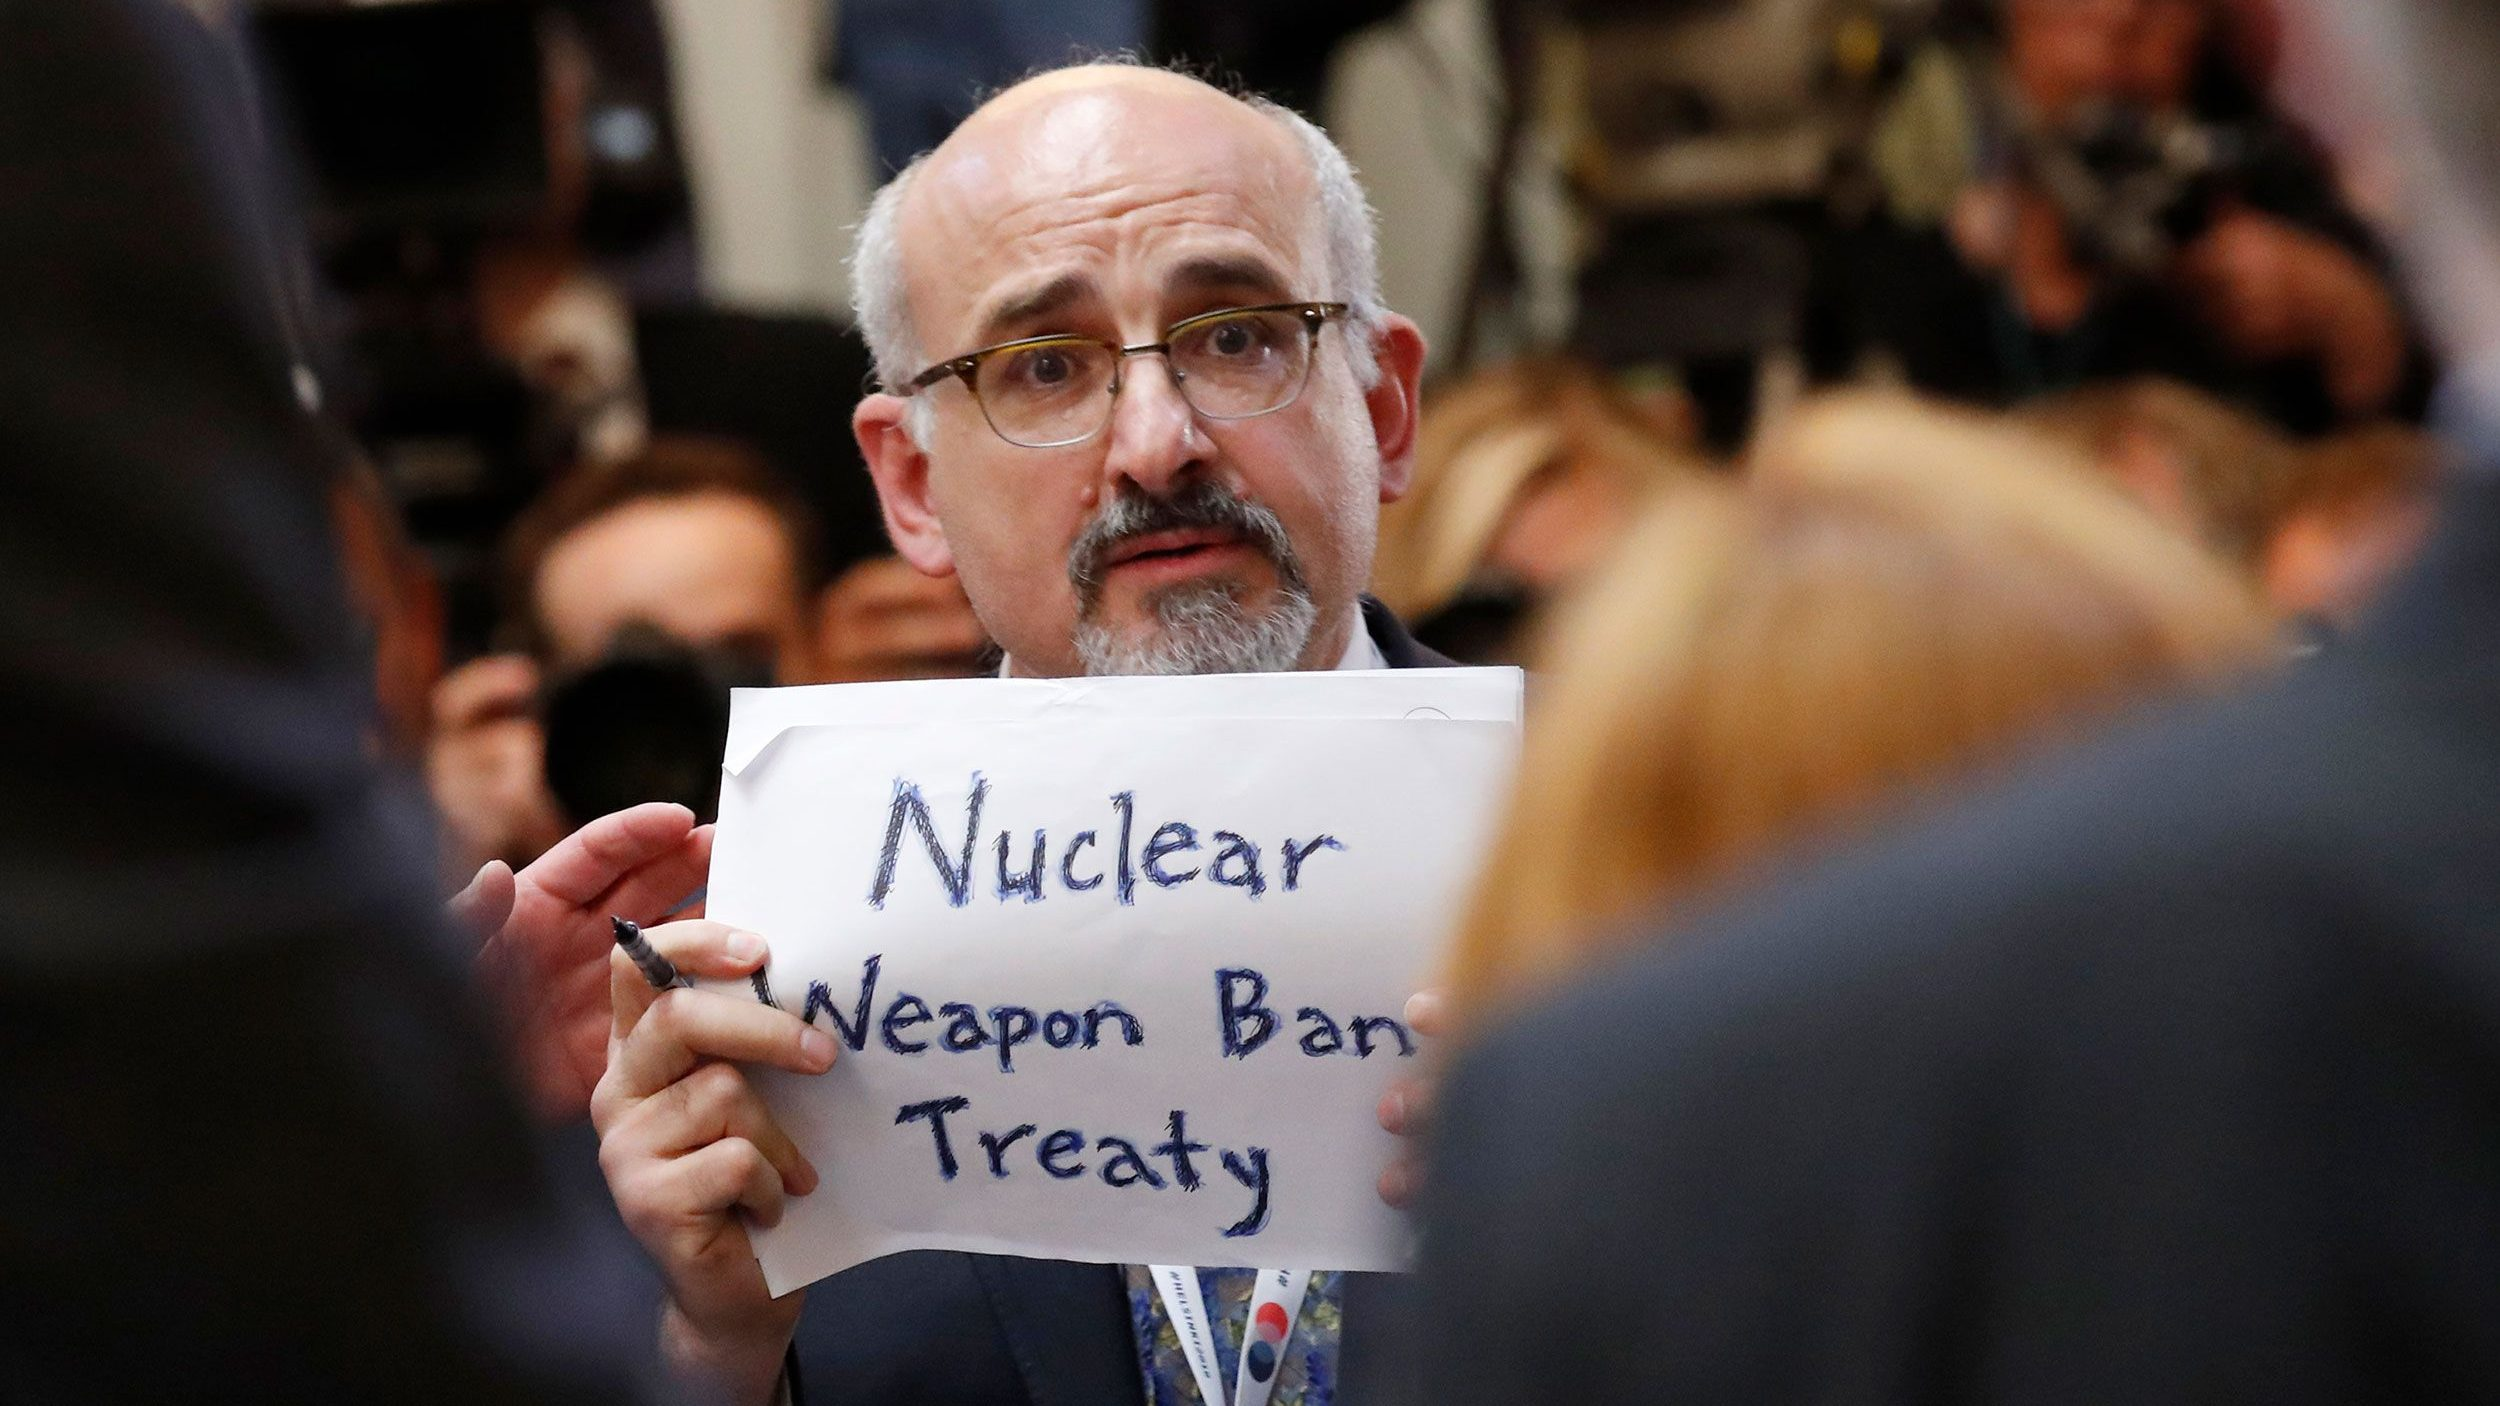 A man holds a sign reading 'Nuclear Weapon Ban Treaty' at Trump and Putin's meeting in Finland in July 2018.